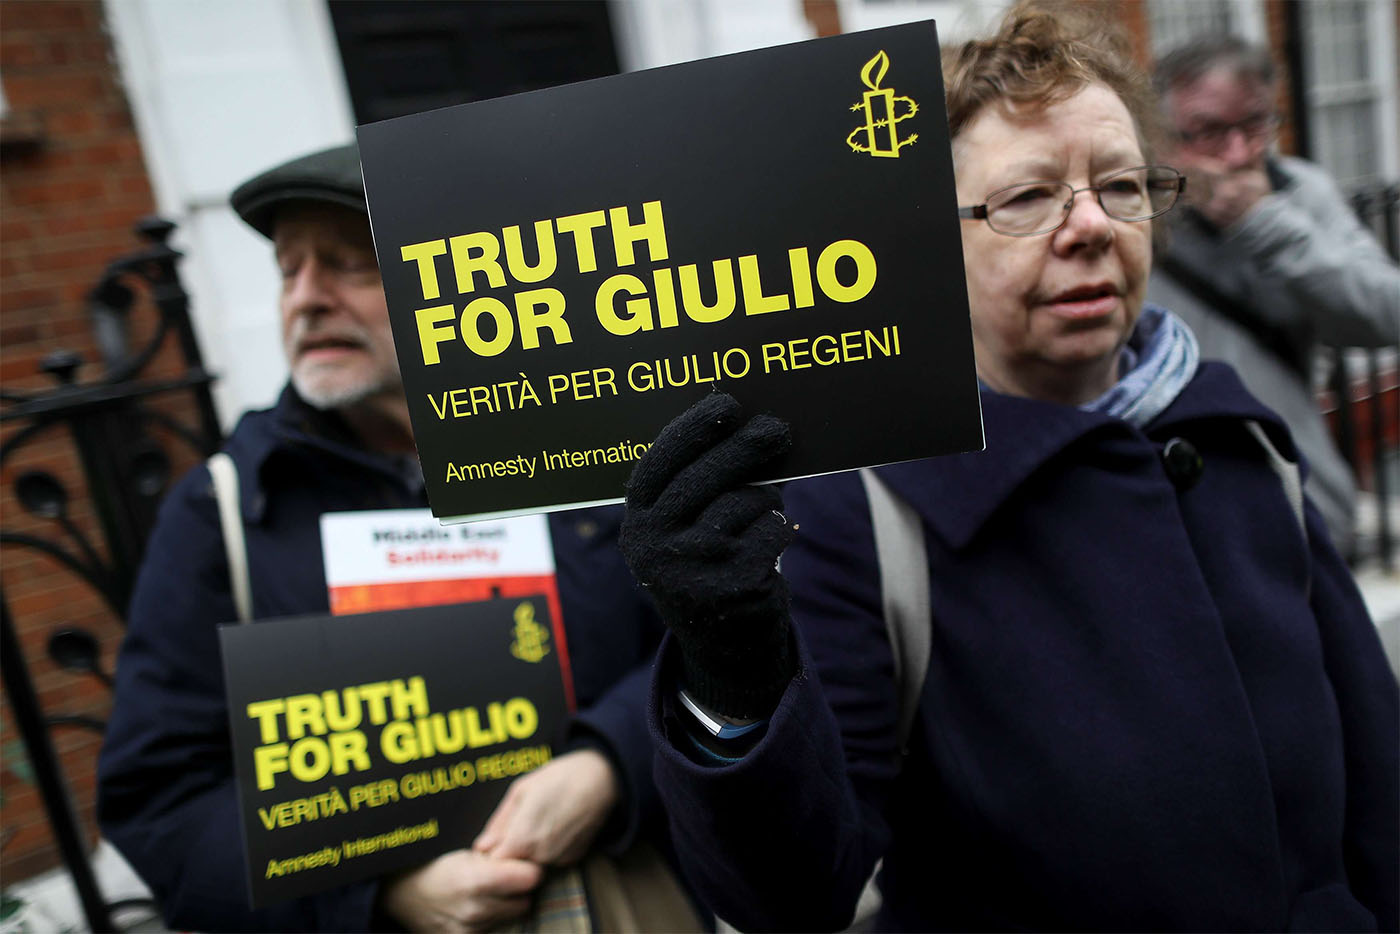 Egypt has always denied suggestions that its security services were involved in the death of Regeni